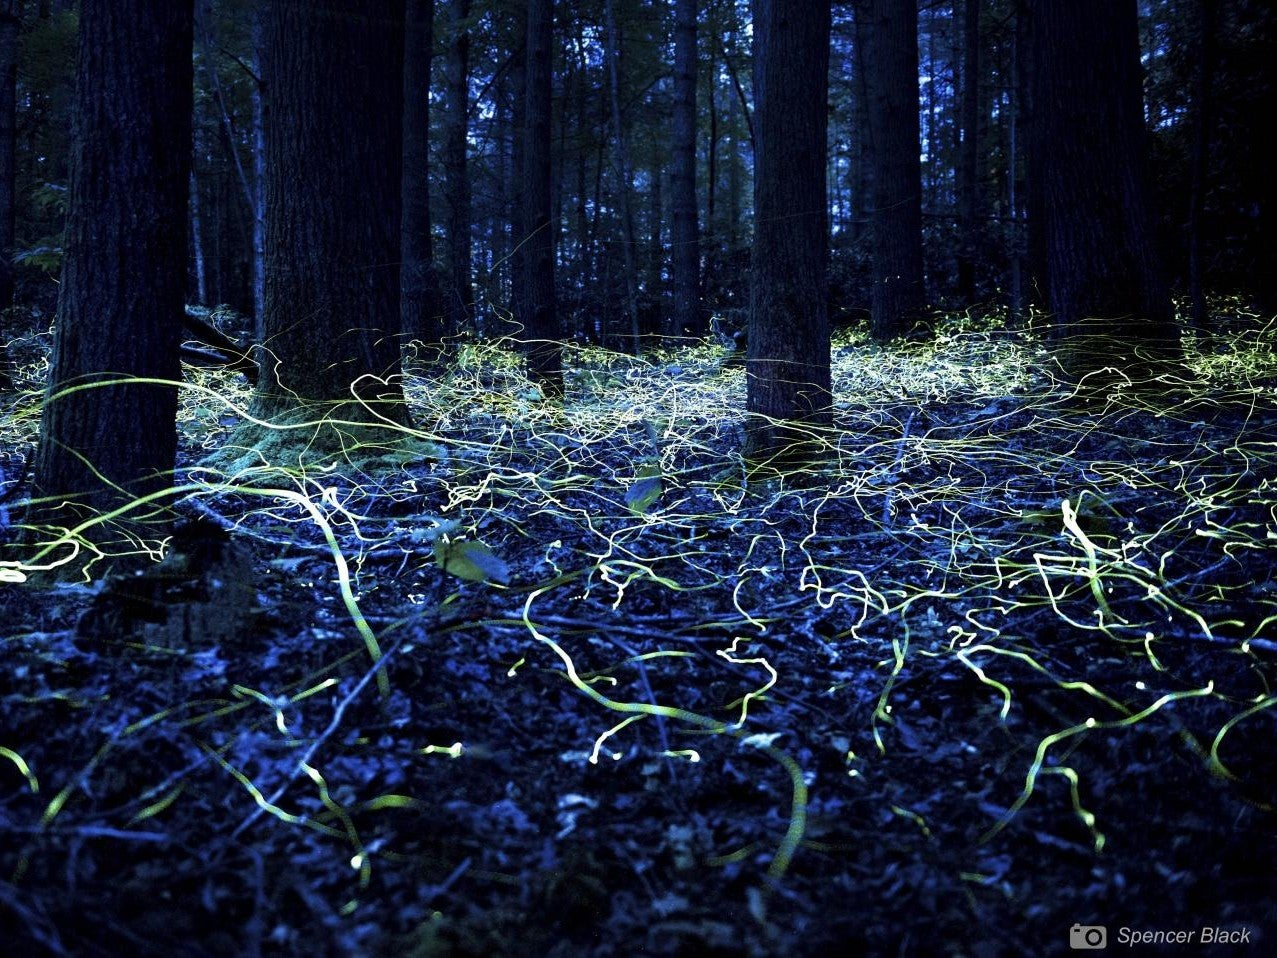 Male blue ghost fireflies in a forest in North Carolina